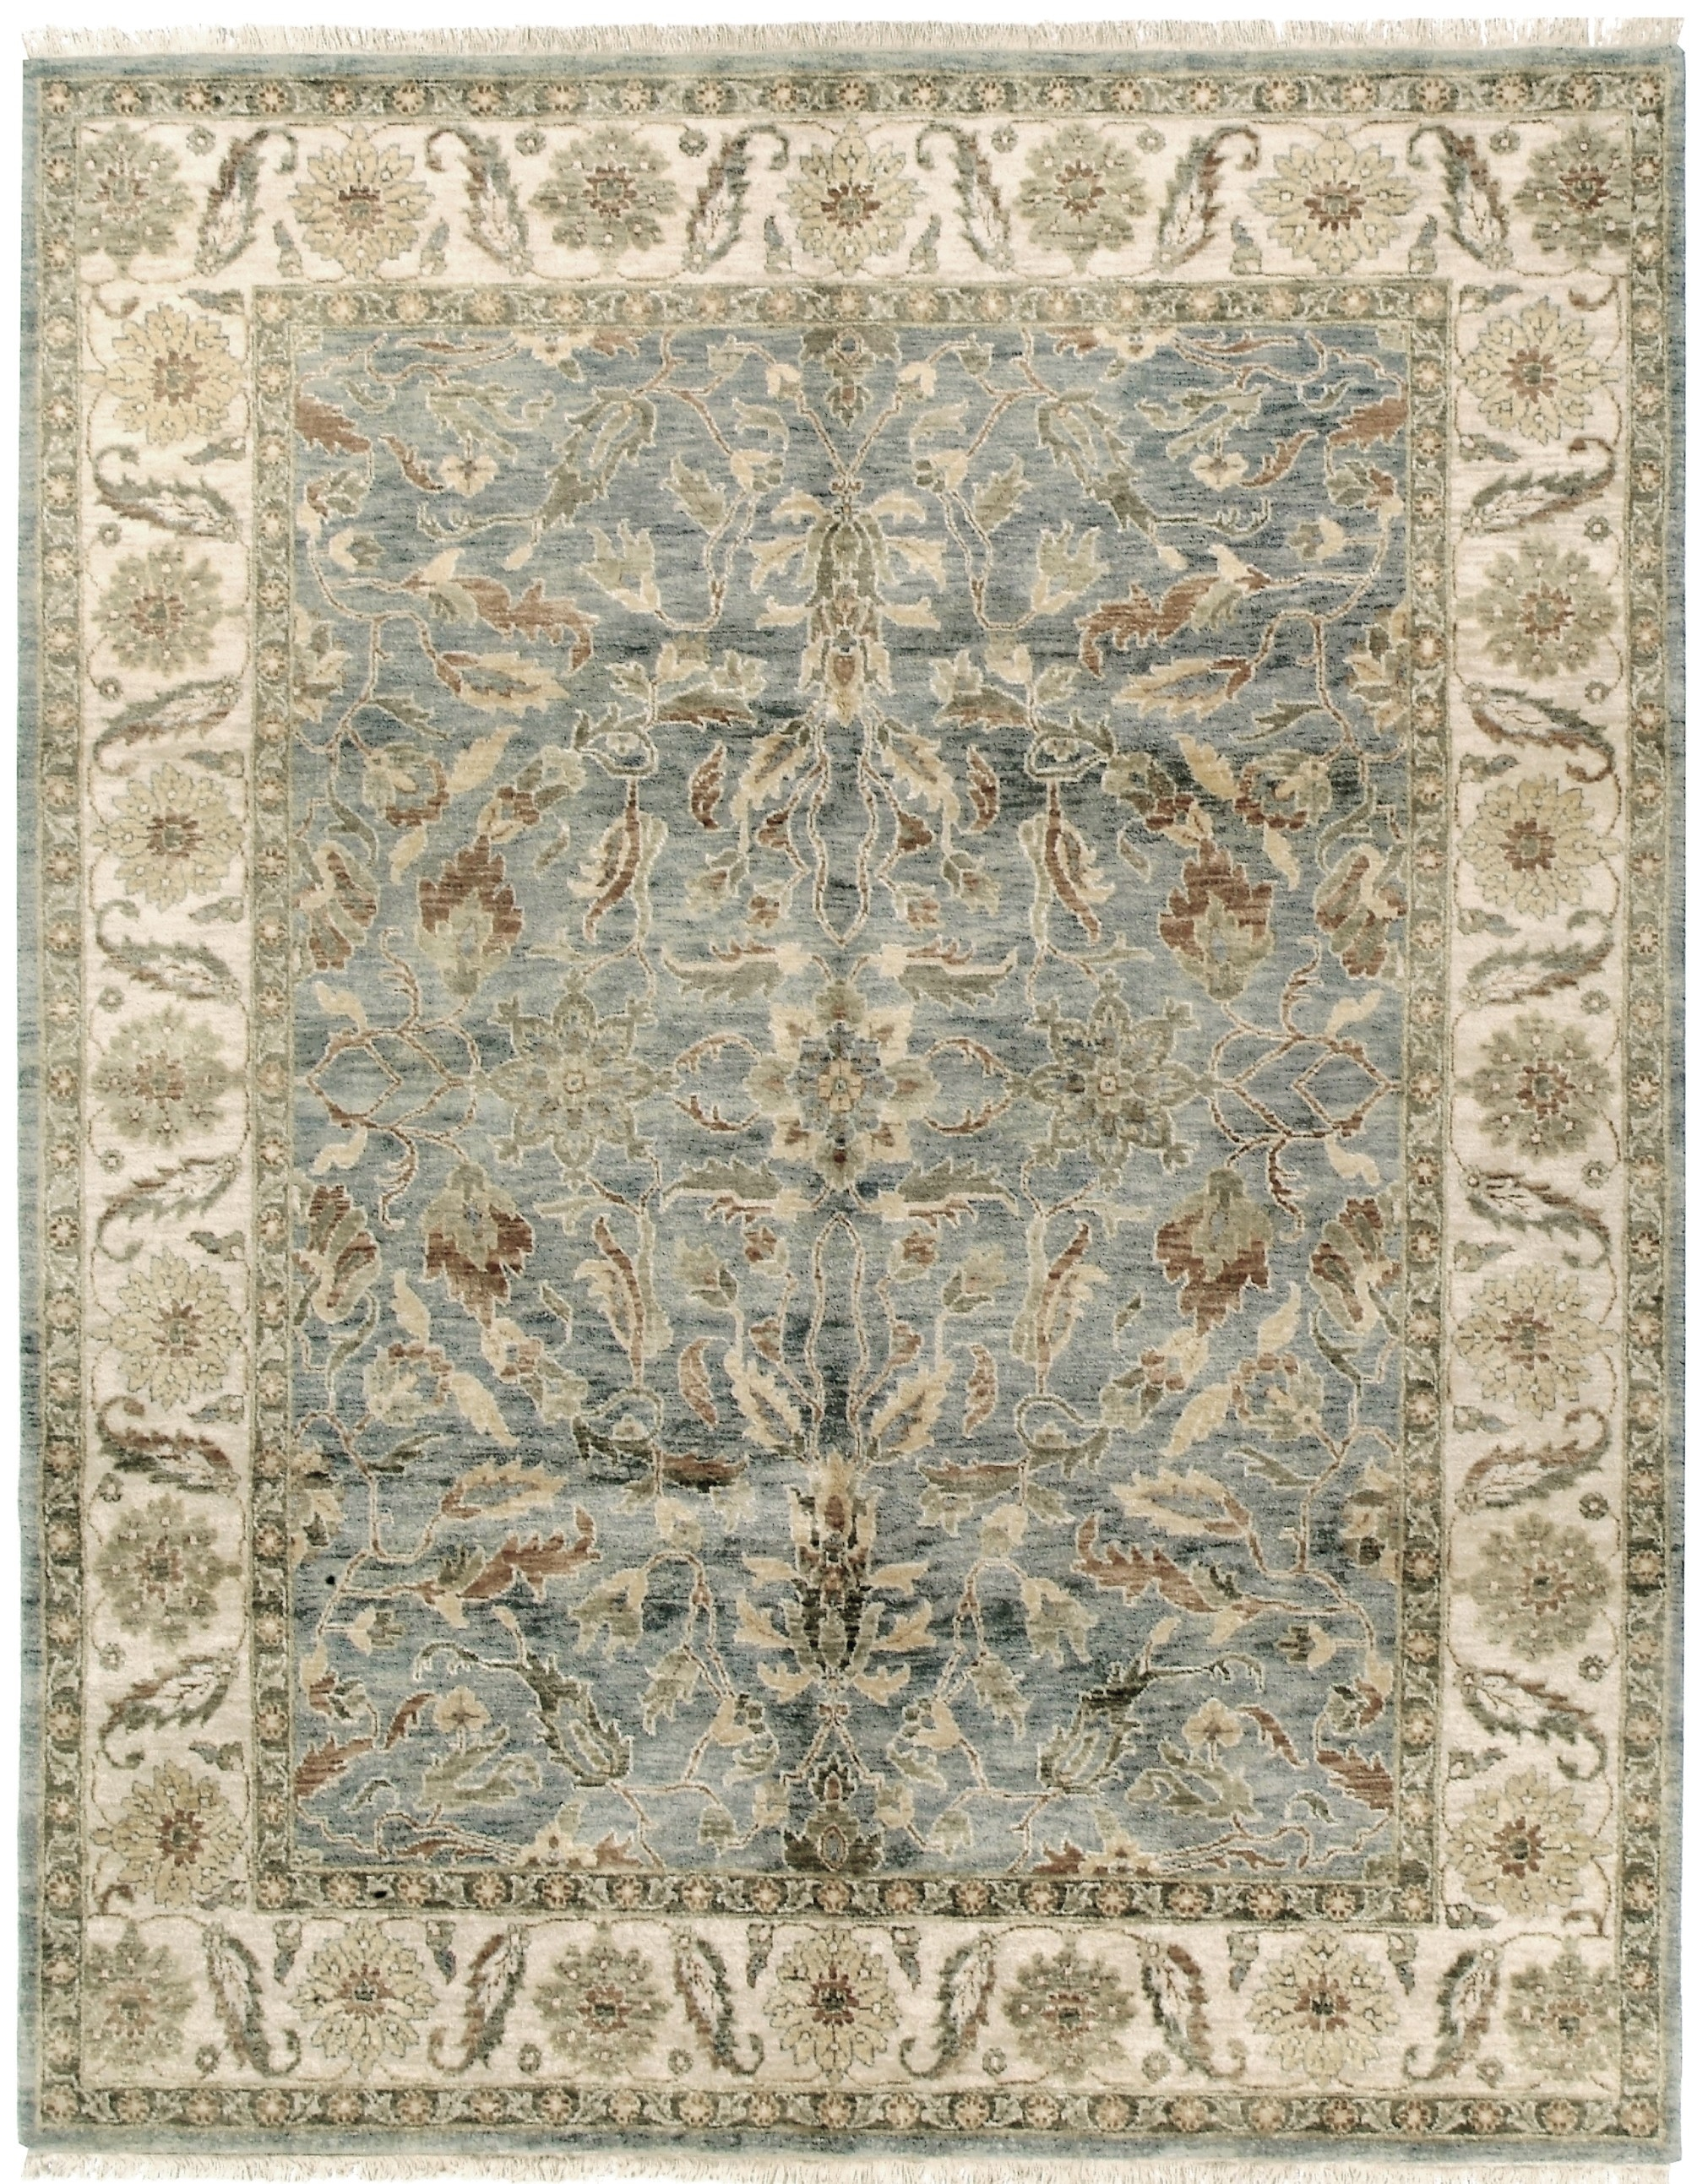 Gdpt Oushak Lt Bluecream Traditional The Rug Bazaar At With Regard To Light Blue And Cream Rugs (Image 5 of 15)